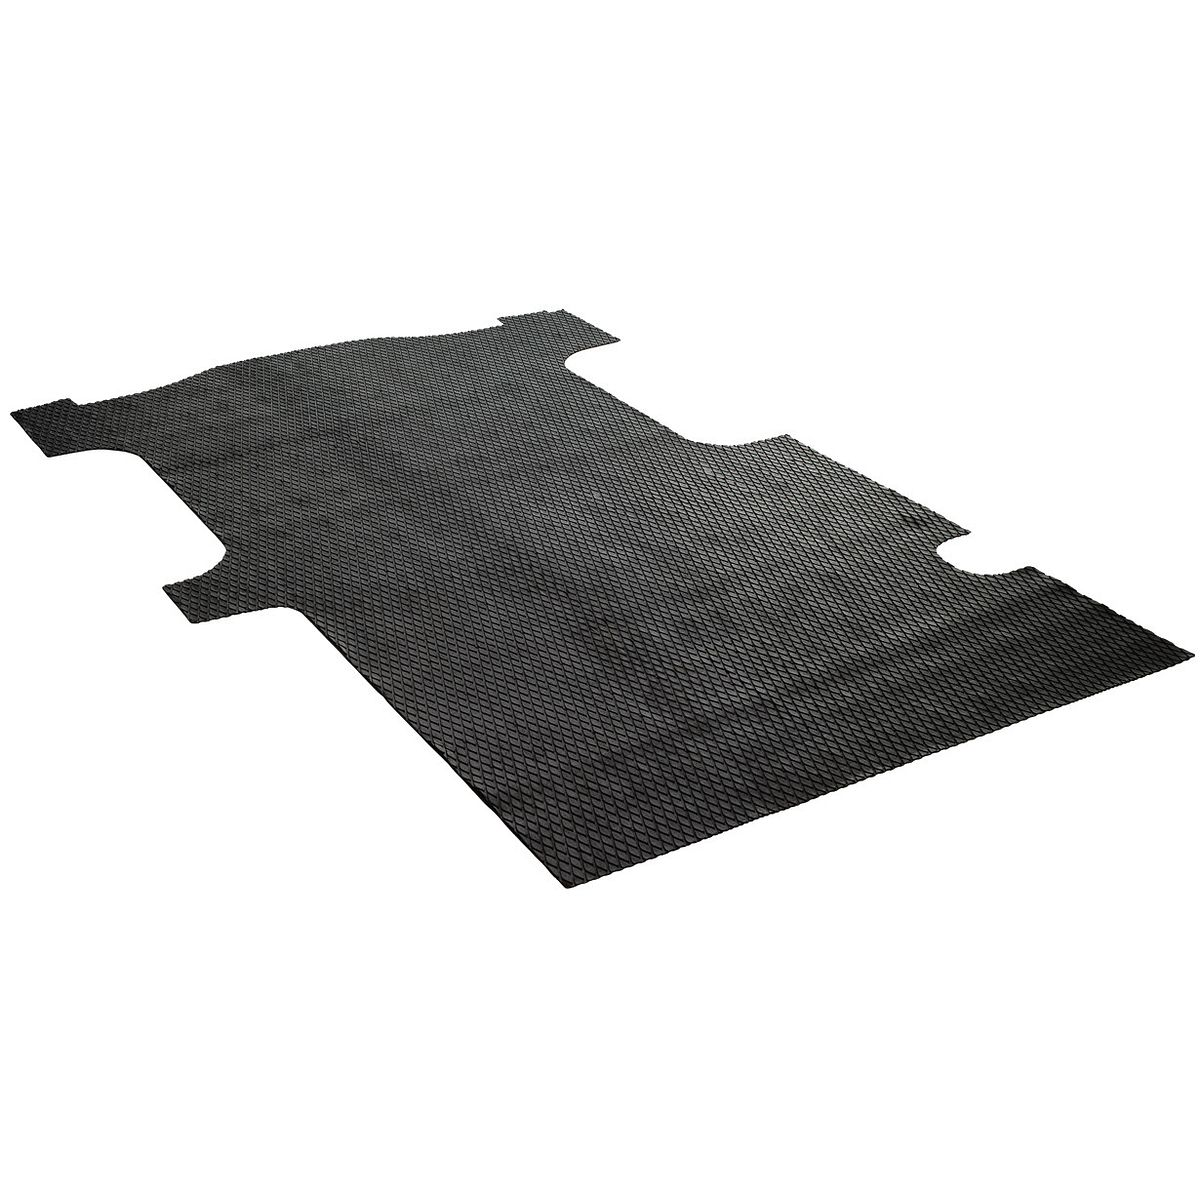 small resolution of van floor mats are designed to fit the specific van bed and wheel base